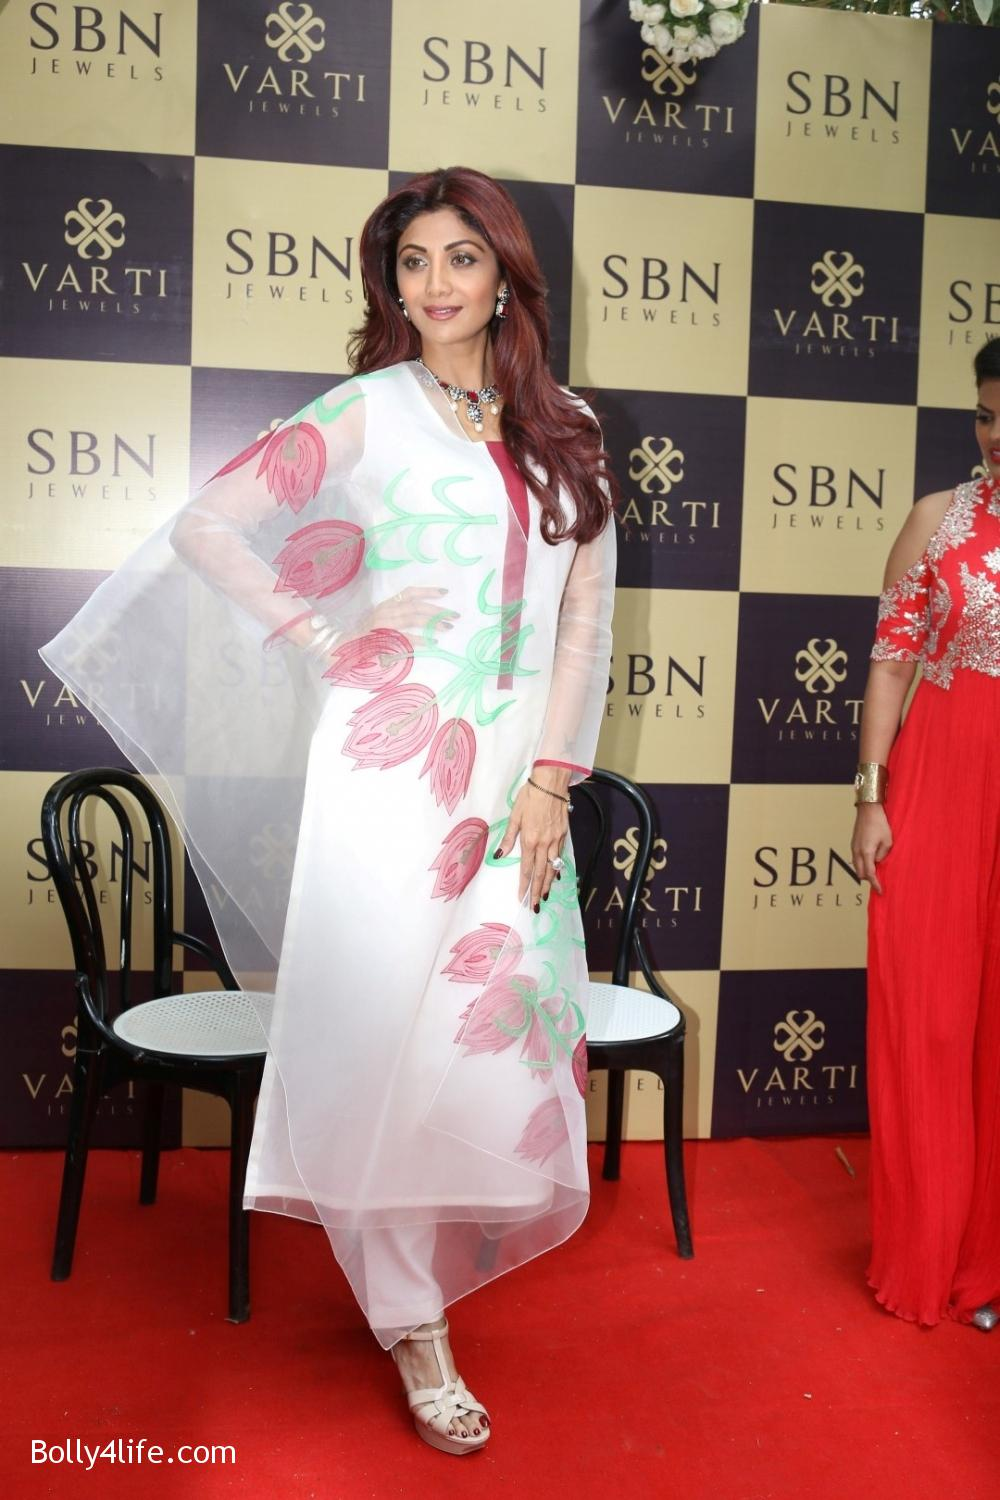 Shilpa-Shetty-inaugurates-jewellery-showroom-of-Varti-Jewells-13.jpg